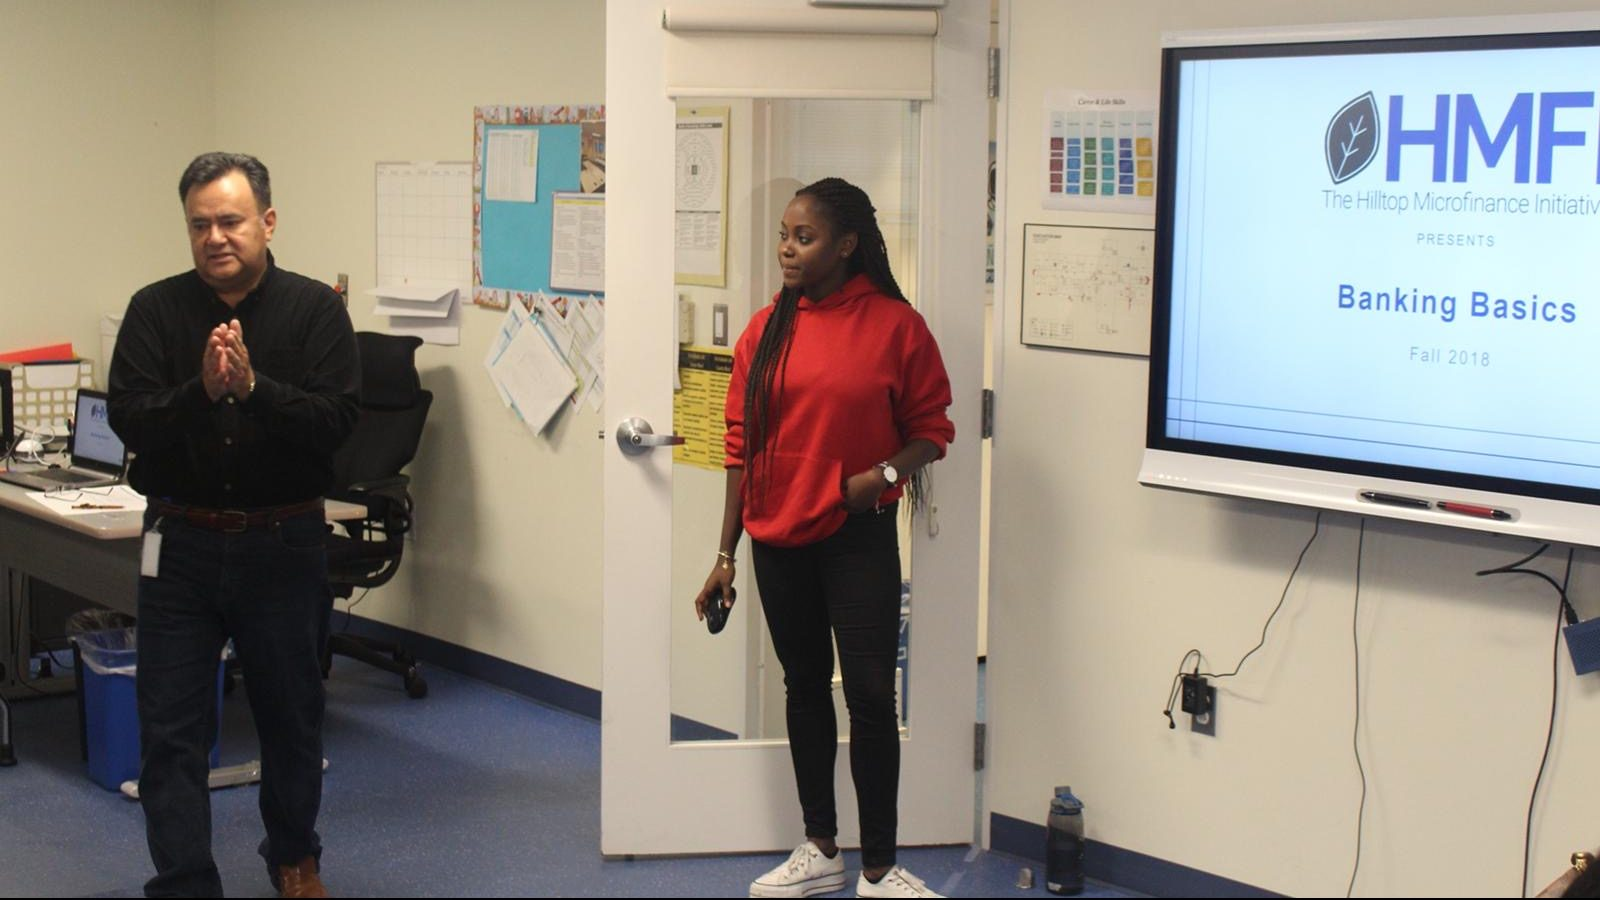 """Travaly is pictured at the front of a classroom next to another instructor. A slideshow with the words """"Banking Basics"""" is depicted on a projector screen behind her."""